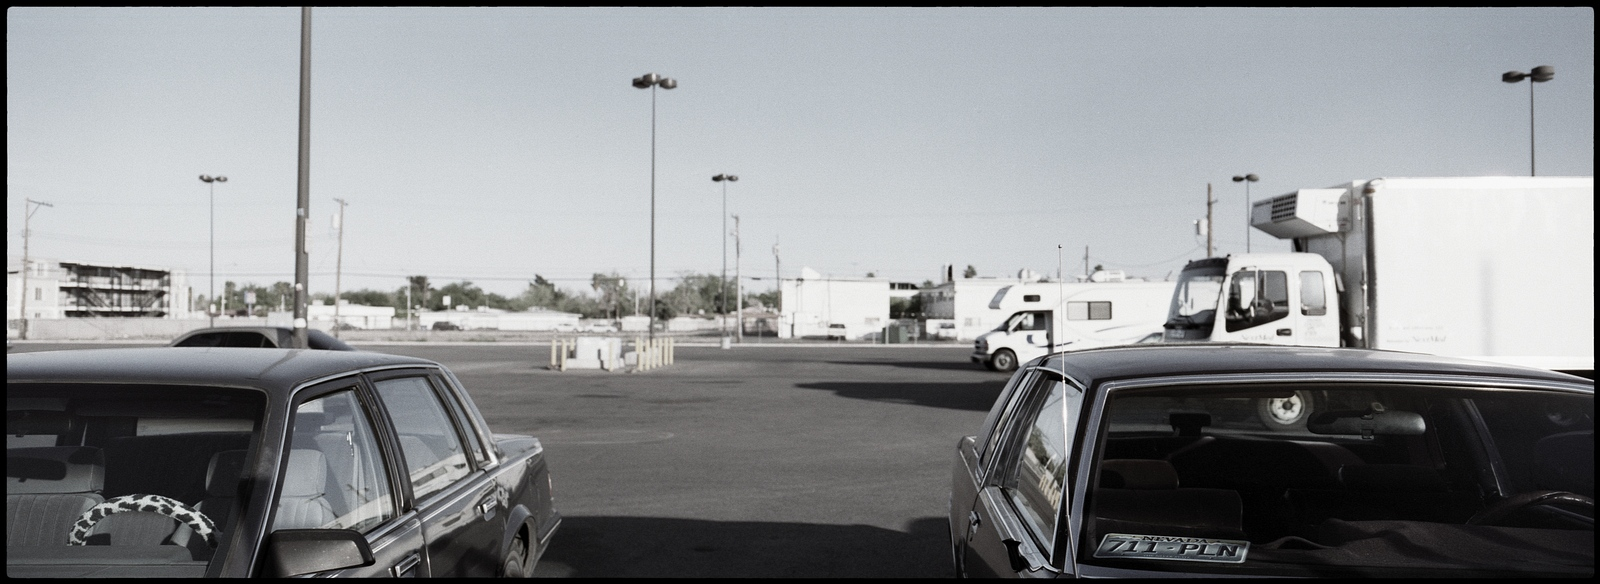 Parking, Las Vegas, NV, USA.All pictures are © Cyril Fakiri - No use without permission.